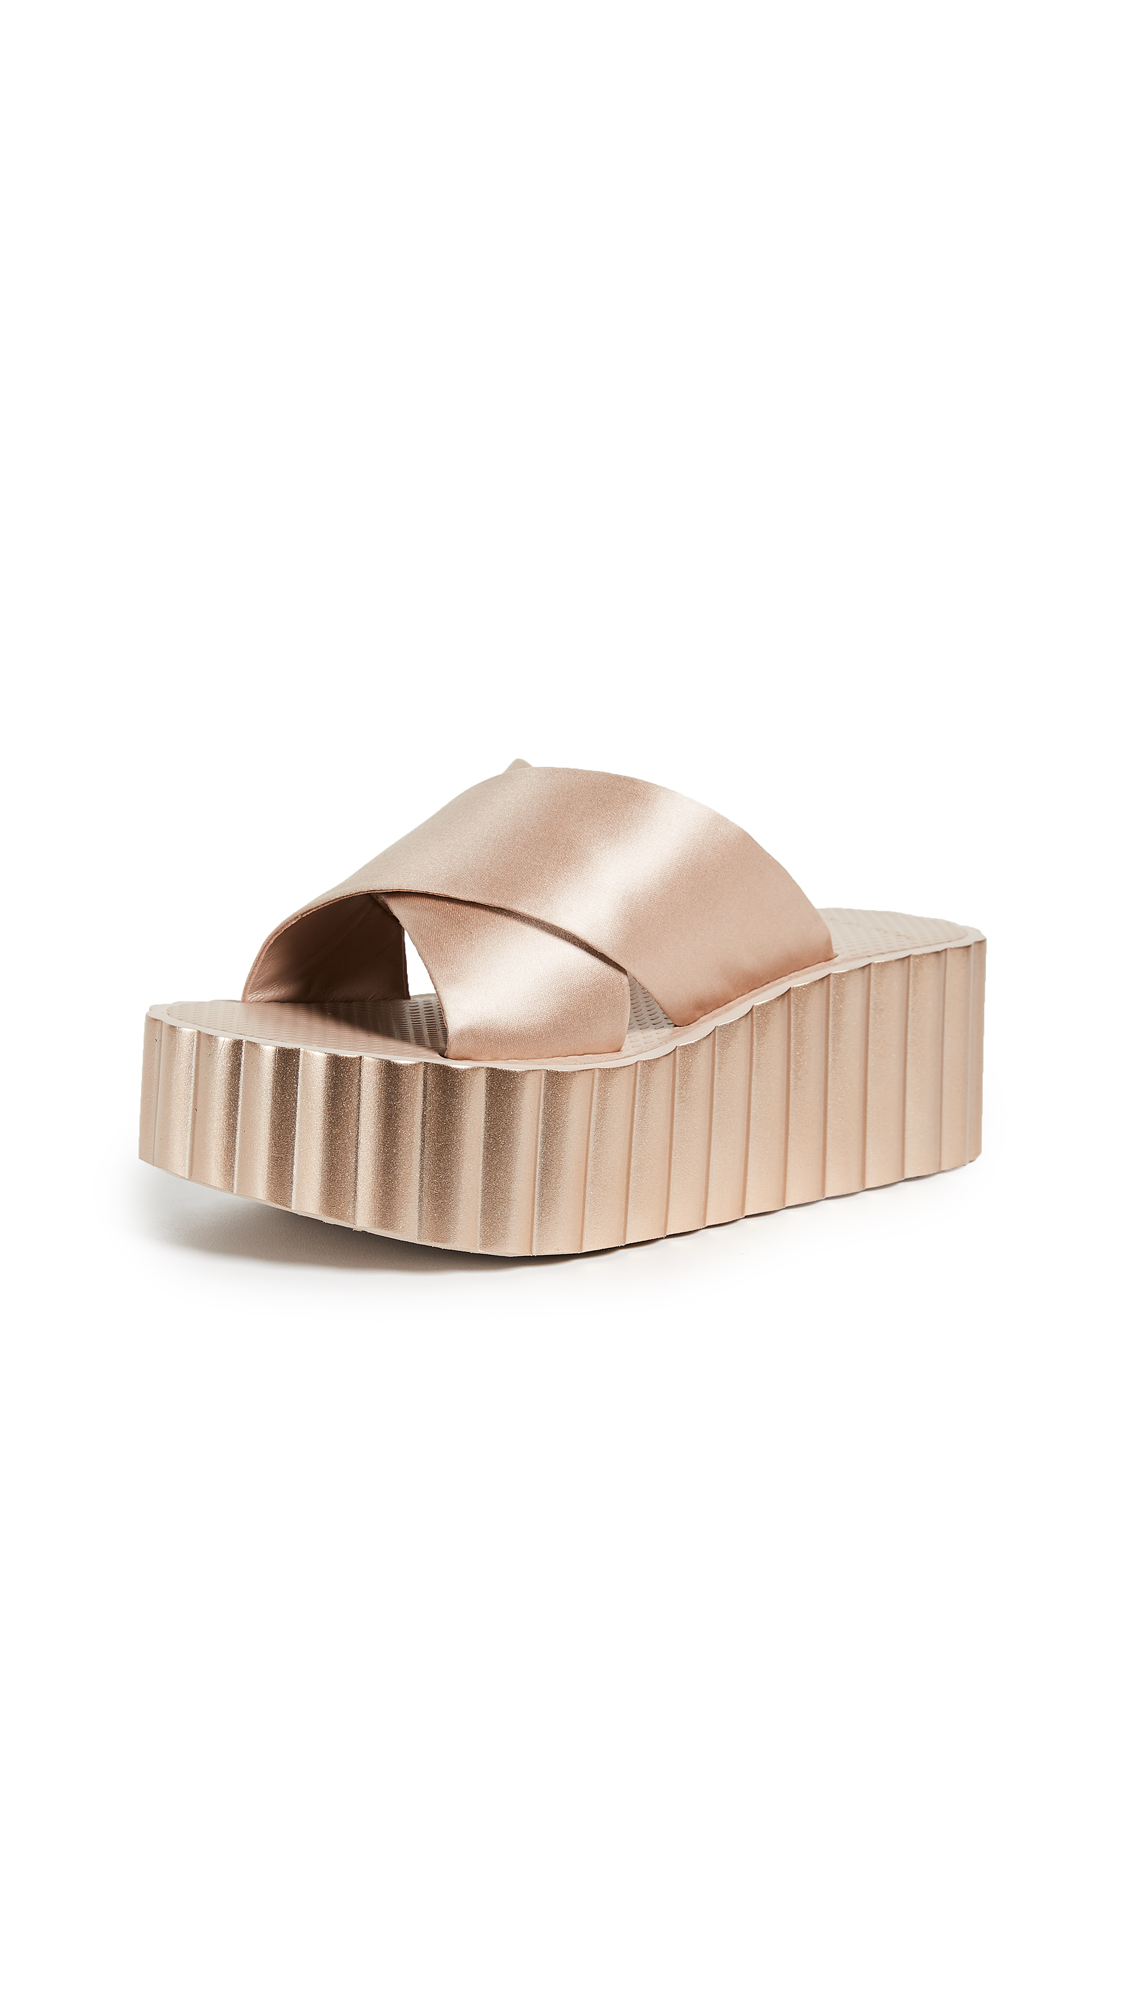 Tory Burch Scallop Wedge Flip Flop - Bellini Blush